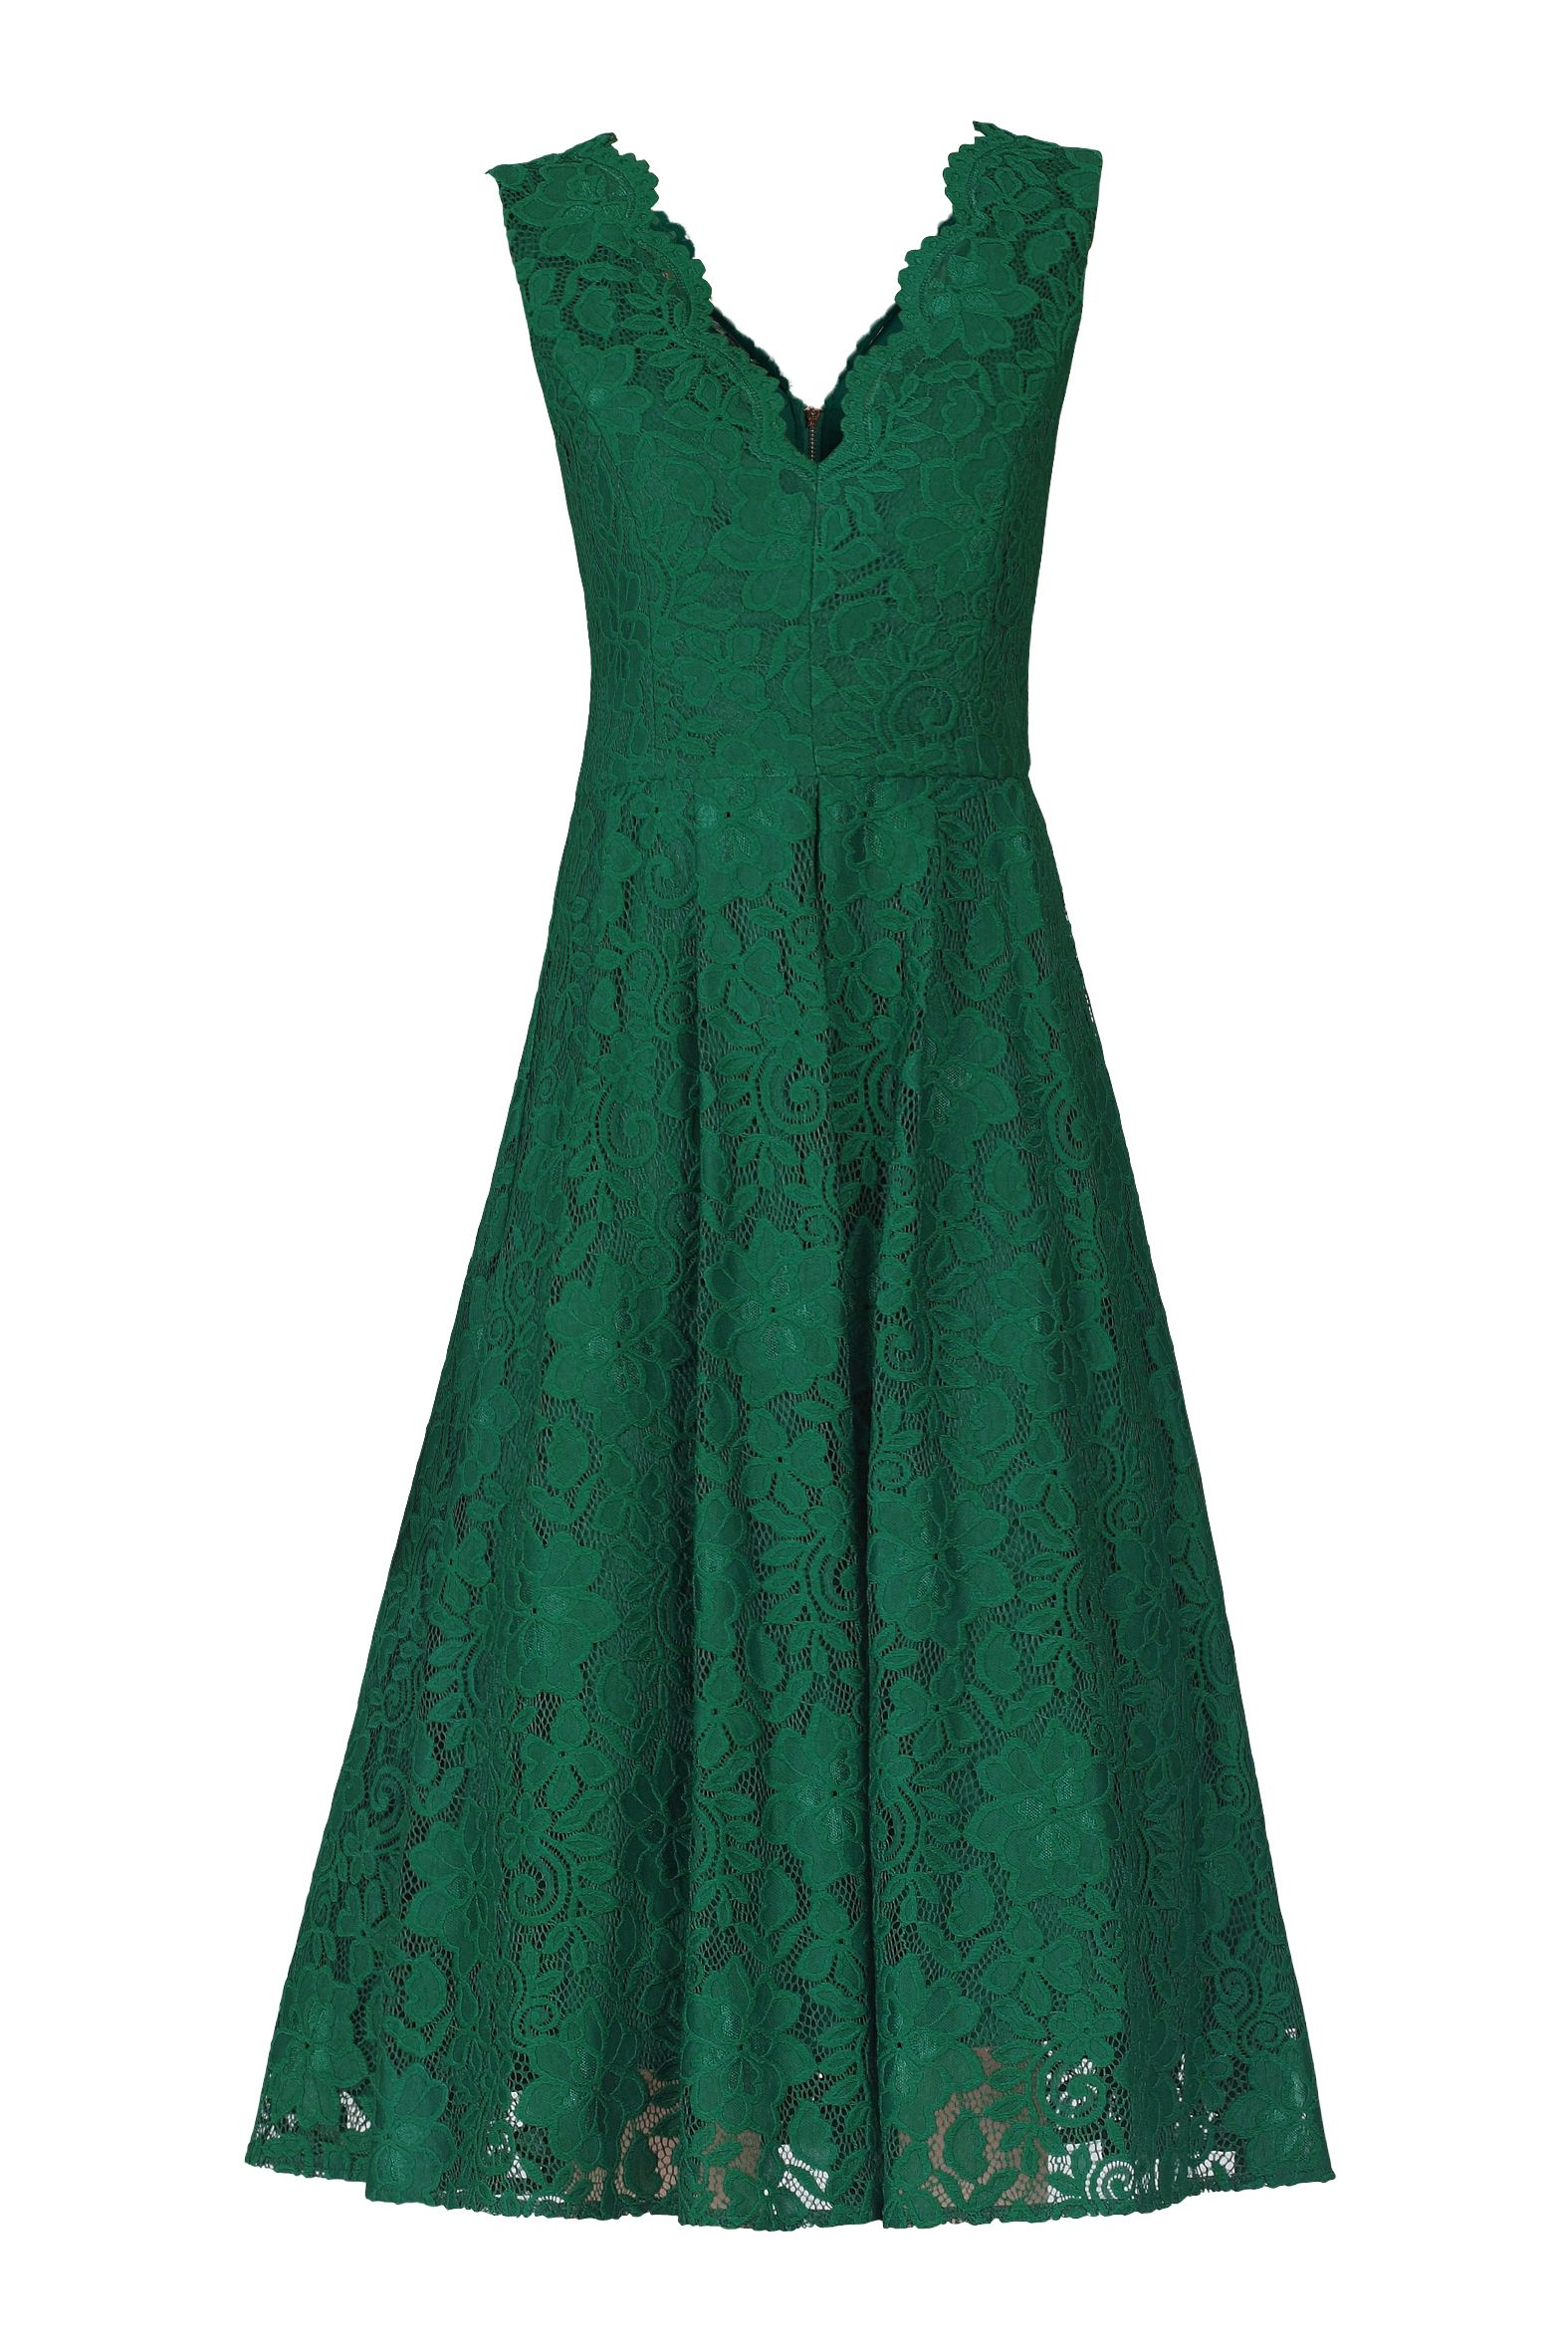 Jolie Moi Scalloped Lace Prom Dress, Green